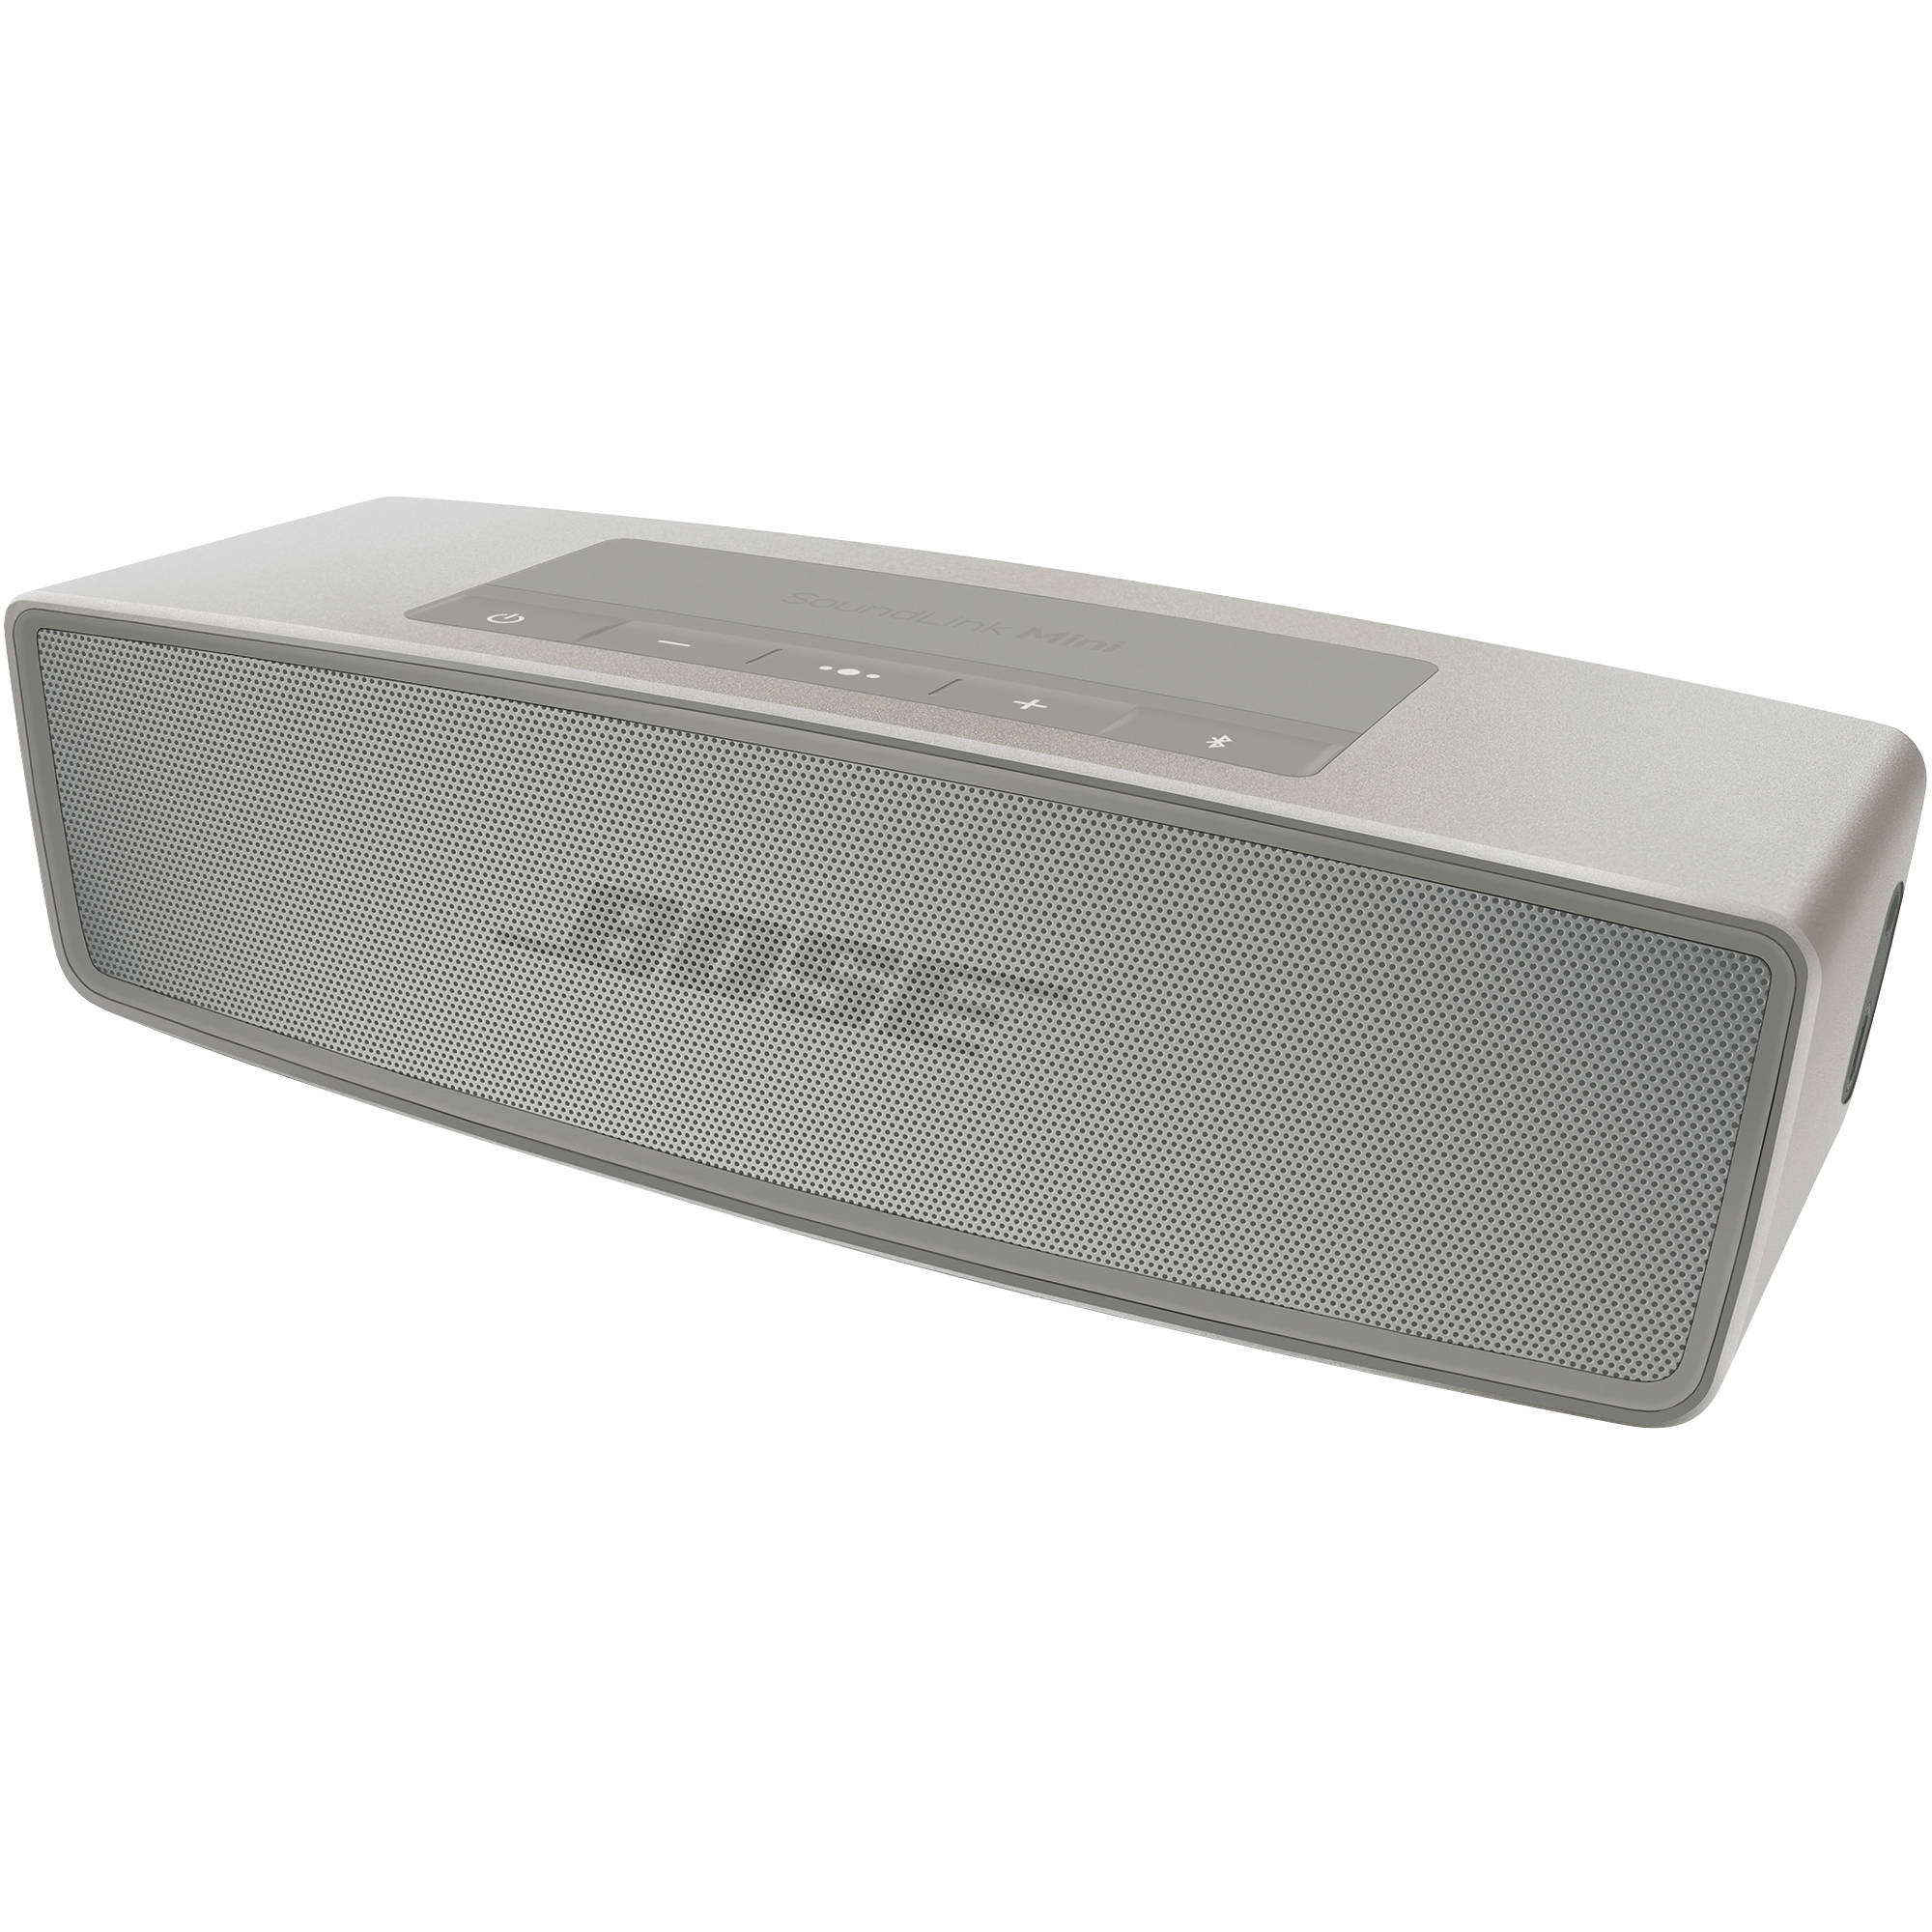 bose grey speakers. bose soundlink mini bluetooth speaker ii (pearl) grey speakers u